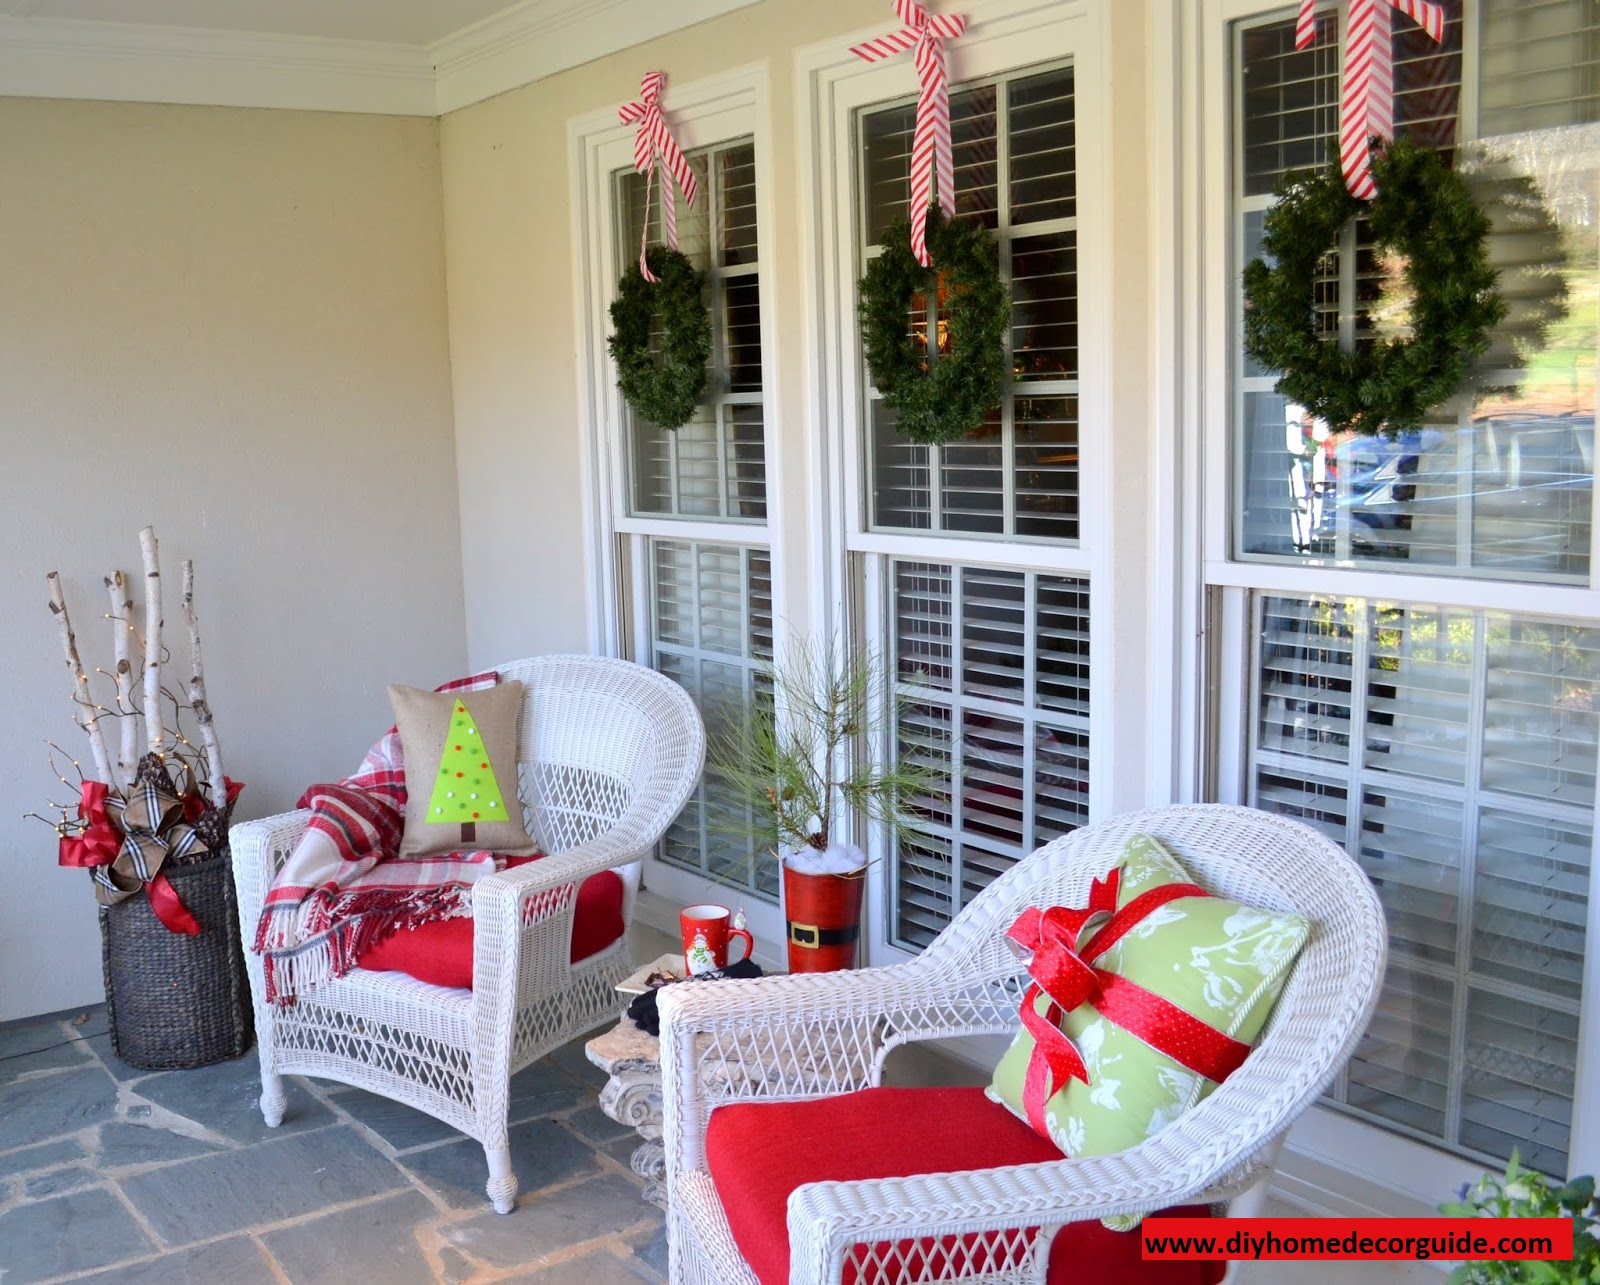 Outdoor christmas window decorations - Outdoor Christmas Decor Ideas Simple Outdoor Christmas Decorations